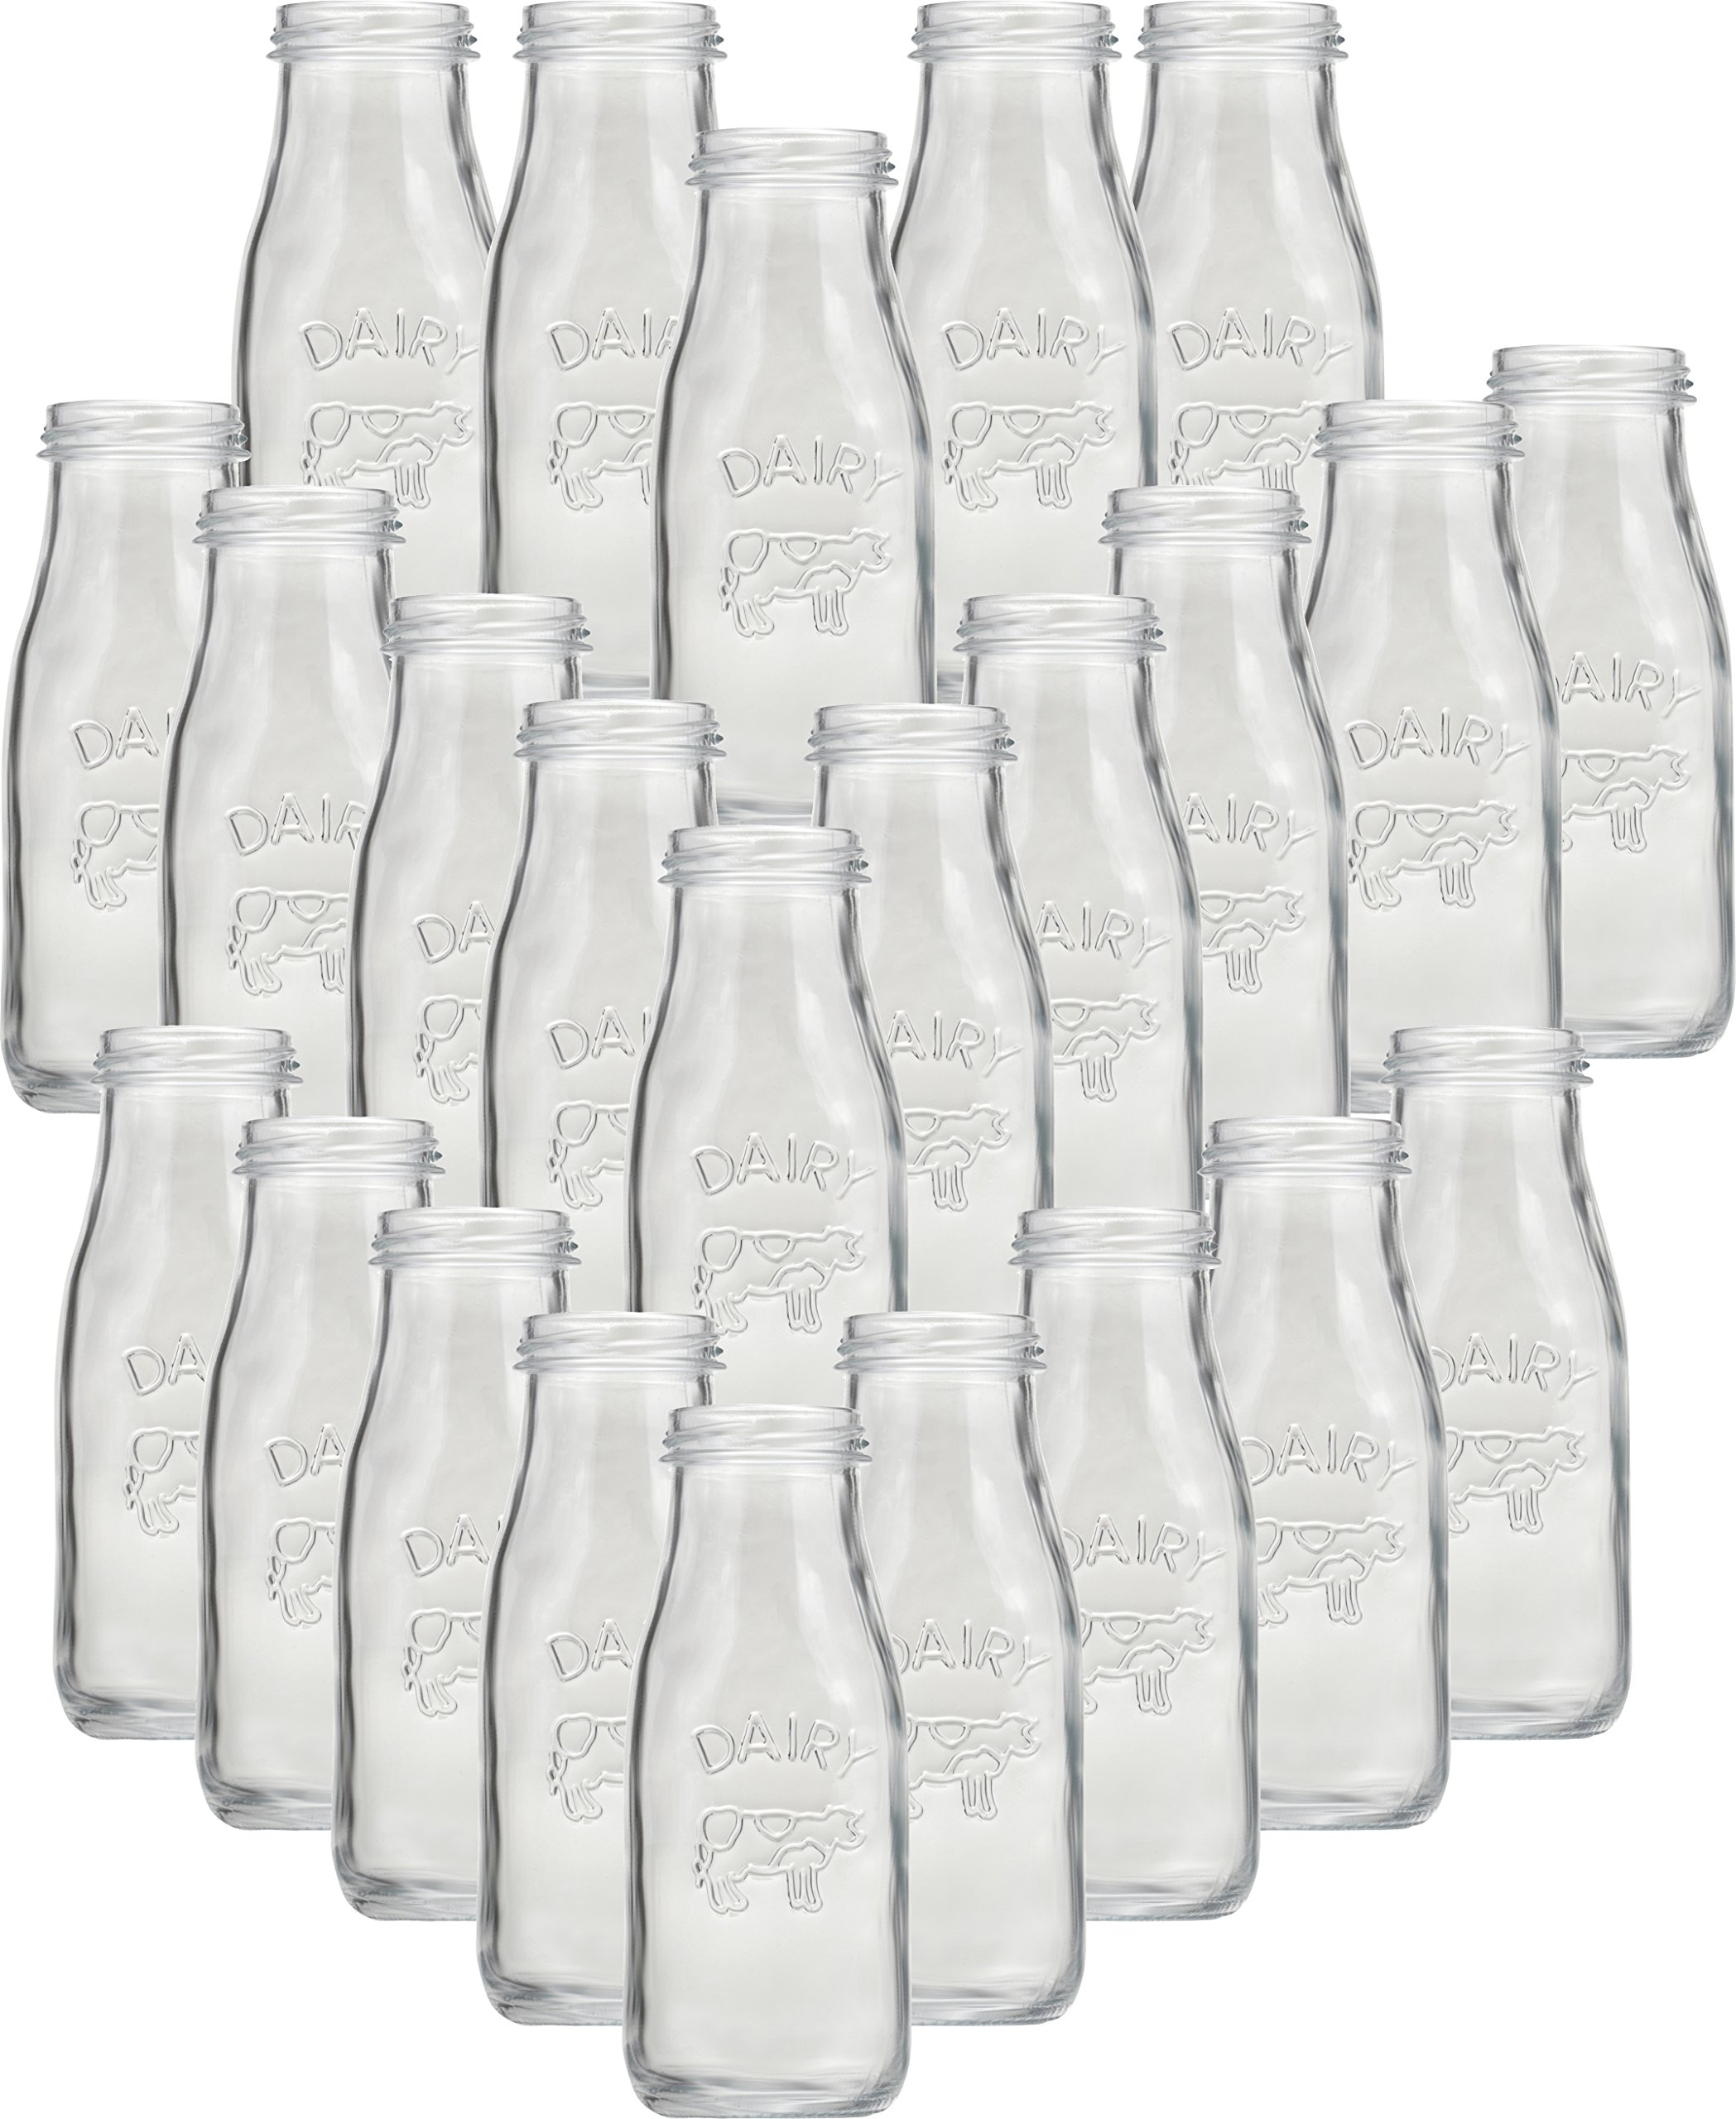 Circleware 06741 Huge Set of 24 Dairy Cow Milk Water Bottles Carafe, Kitchen Entertainment Drinking Glasses Glassware for Juice, Beer and Bar Liquor Dining Decor Beverage Gifts, 10 oz, Clear by Circleware (Image #1)